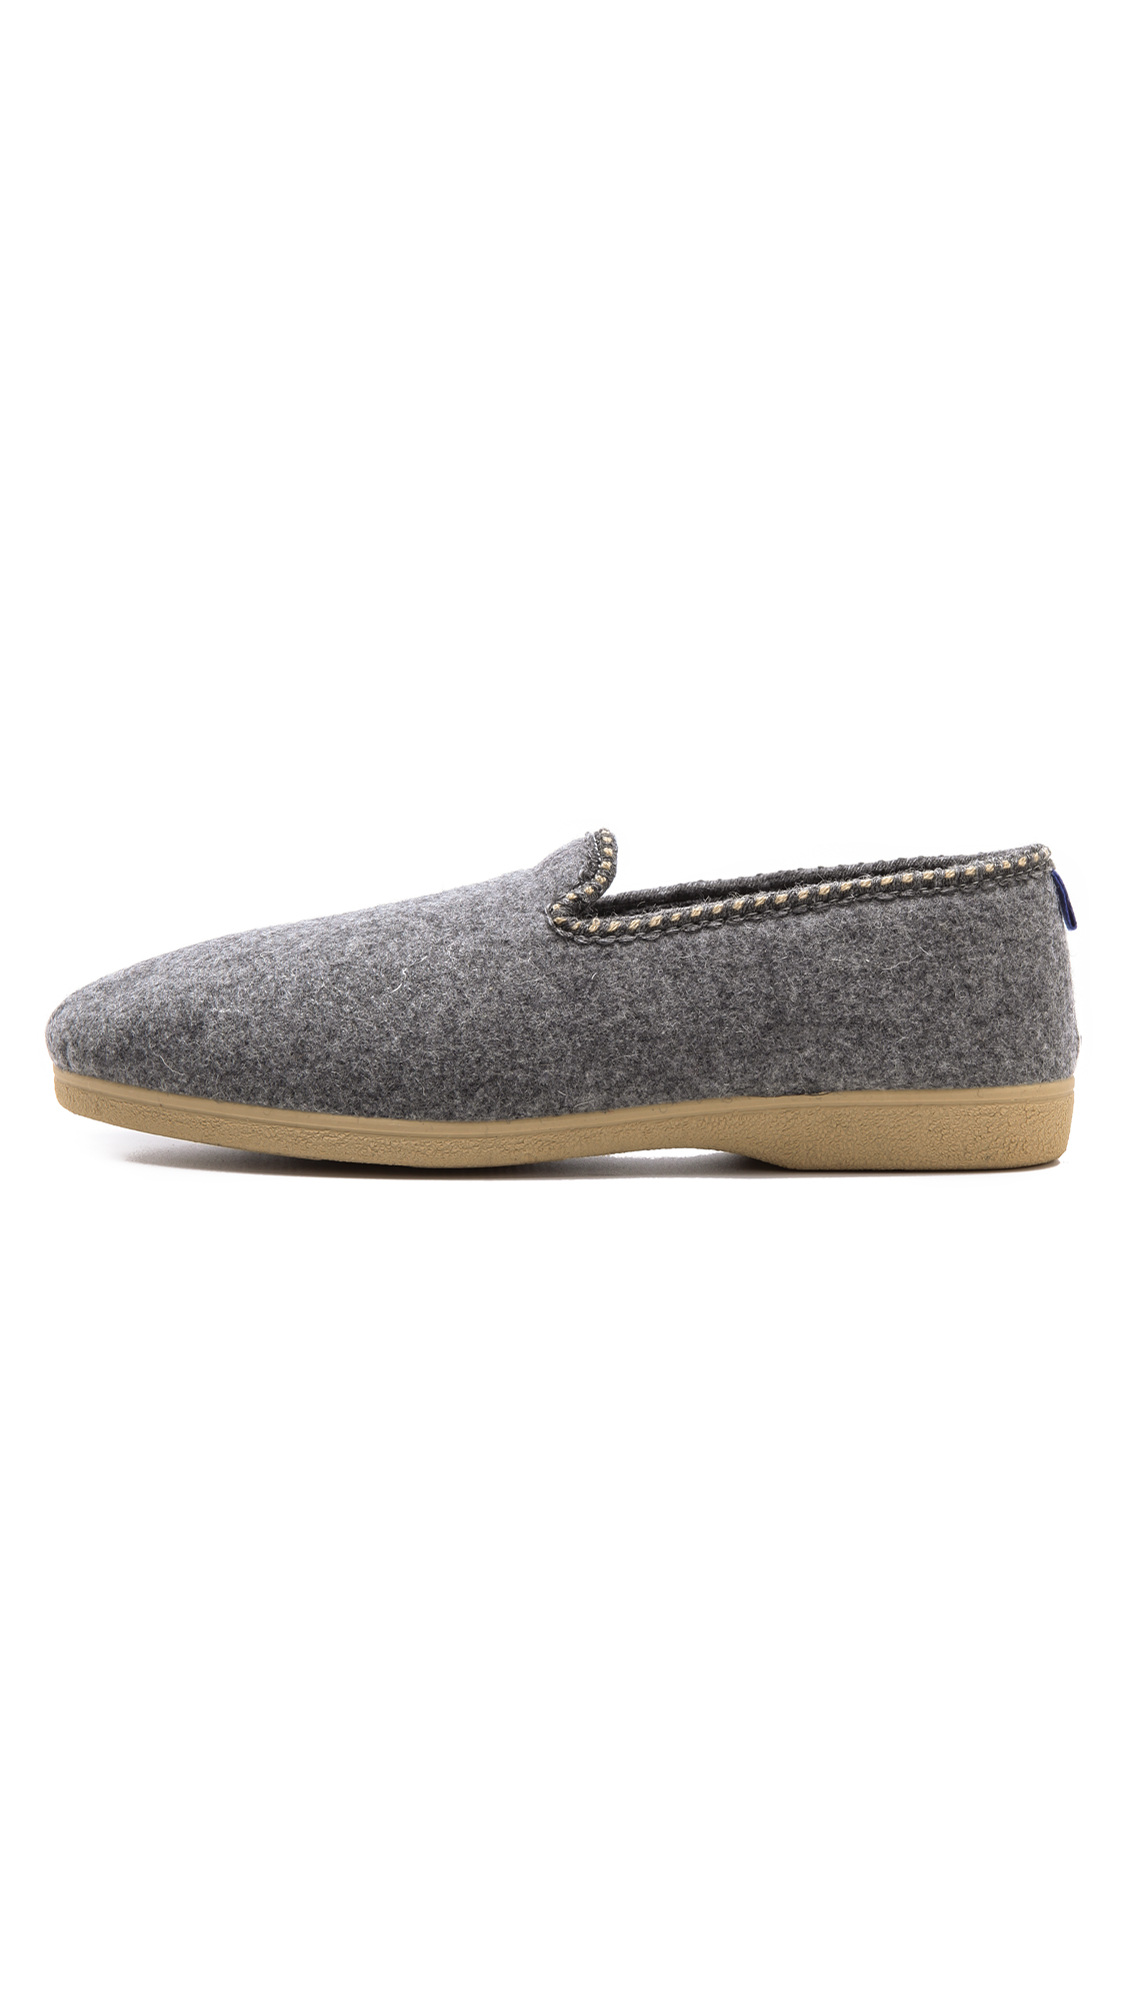 Industry of All Nations Cabrales Loafers in Heather Grey (Grey) for Men